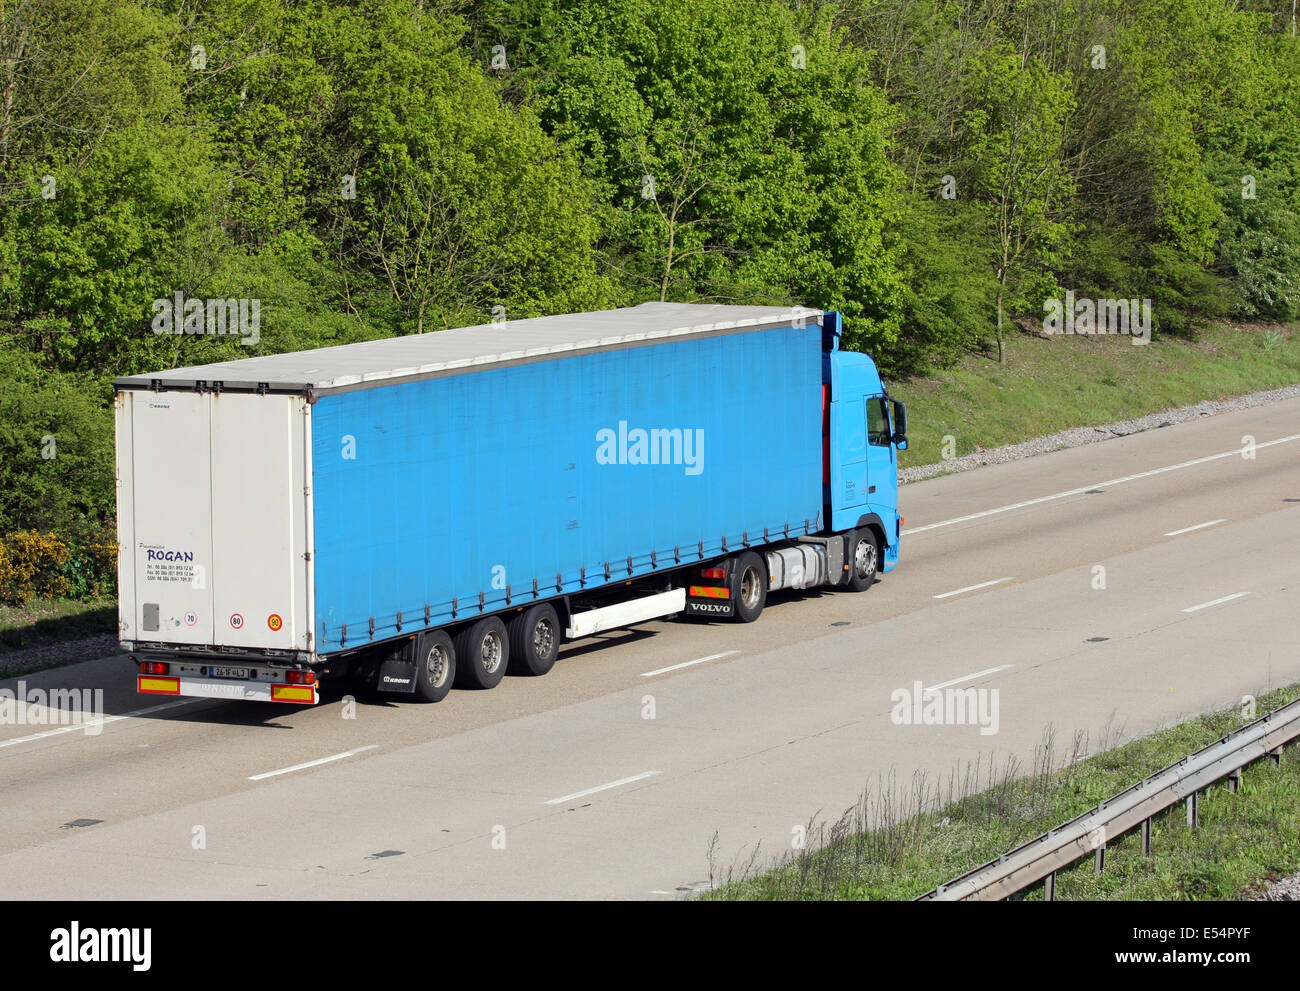 A Rogan articulated truck traveling along the M20 motorway in Kent, England - Stock Image